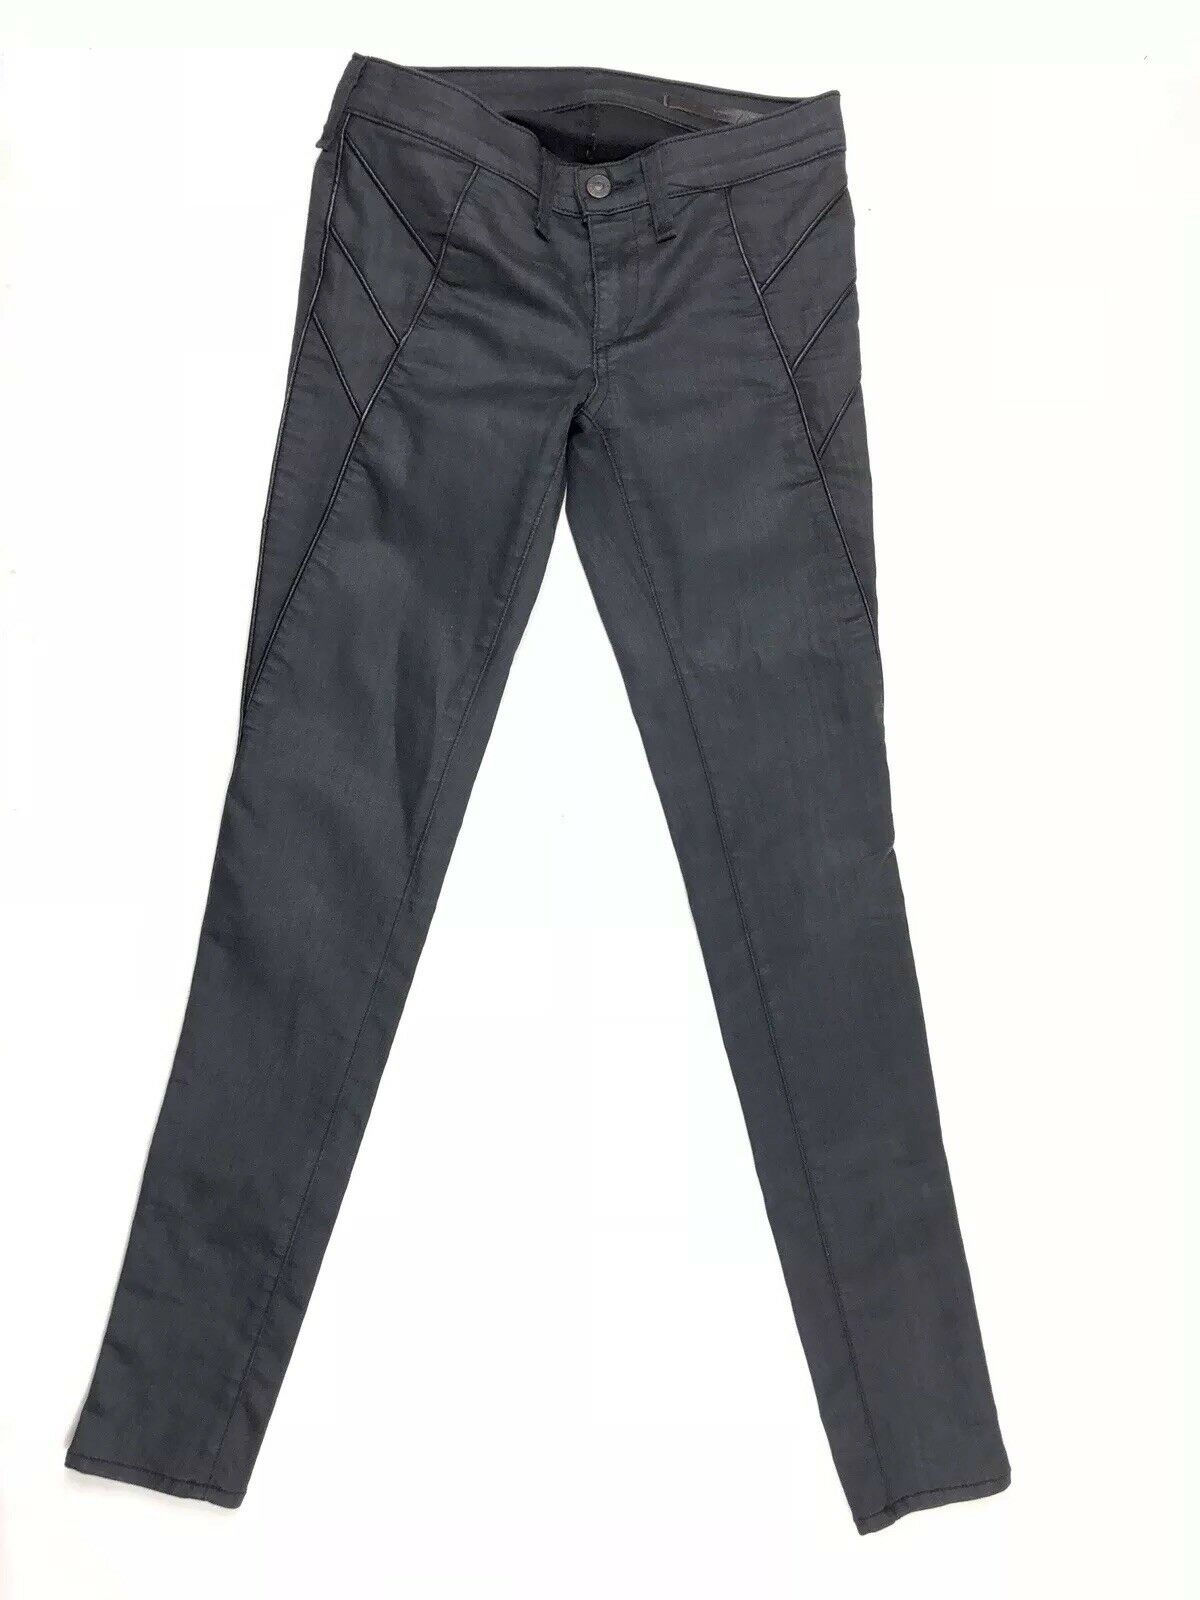 Rag & Bone Trench Legging with Lamb Leather Piping Stretch Pants Size 25